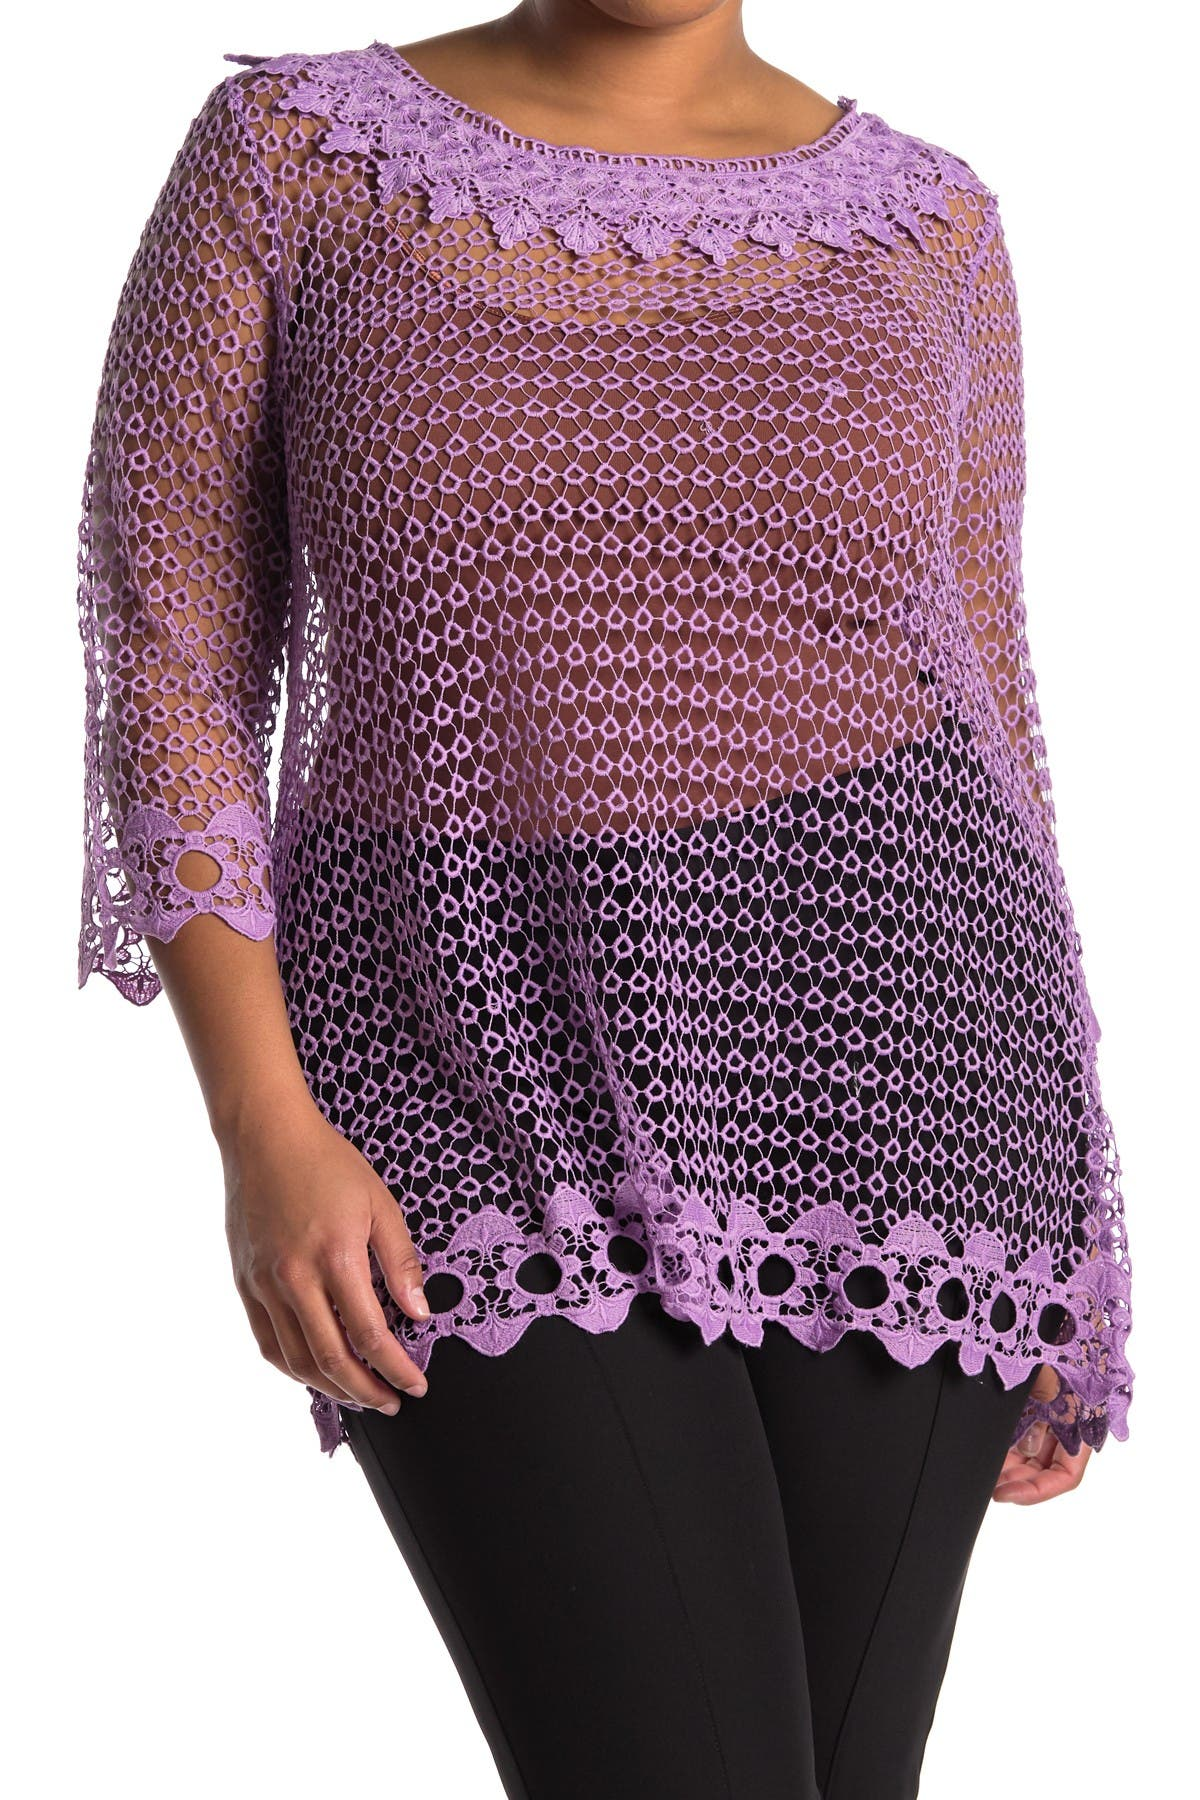 Image of Forgotten Grace Crochet Tunic Blouse